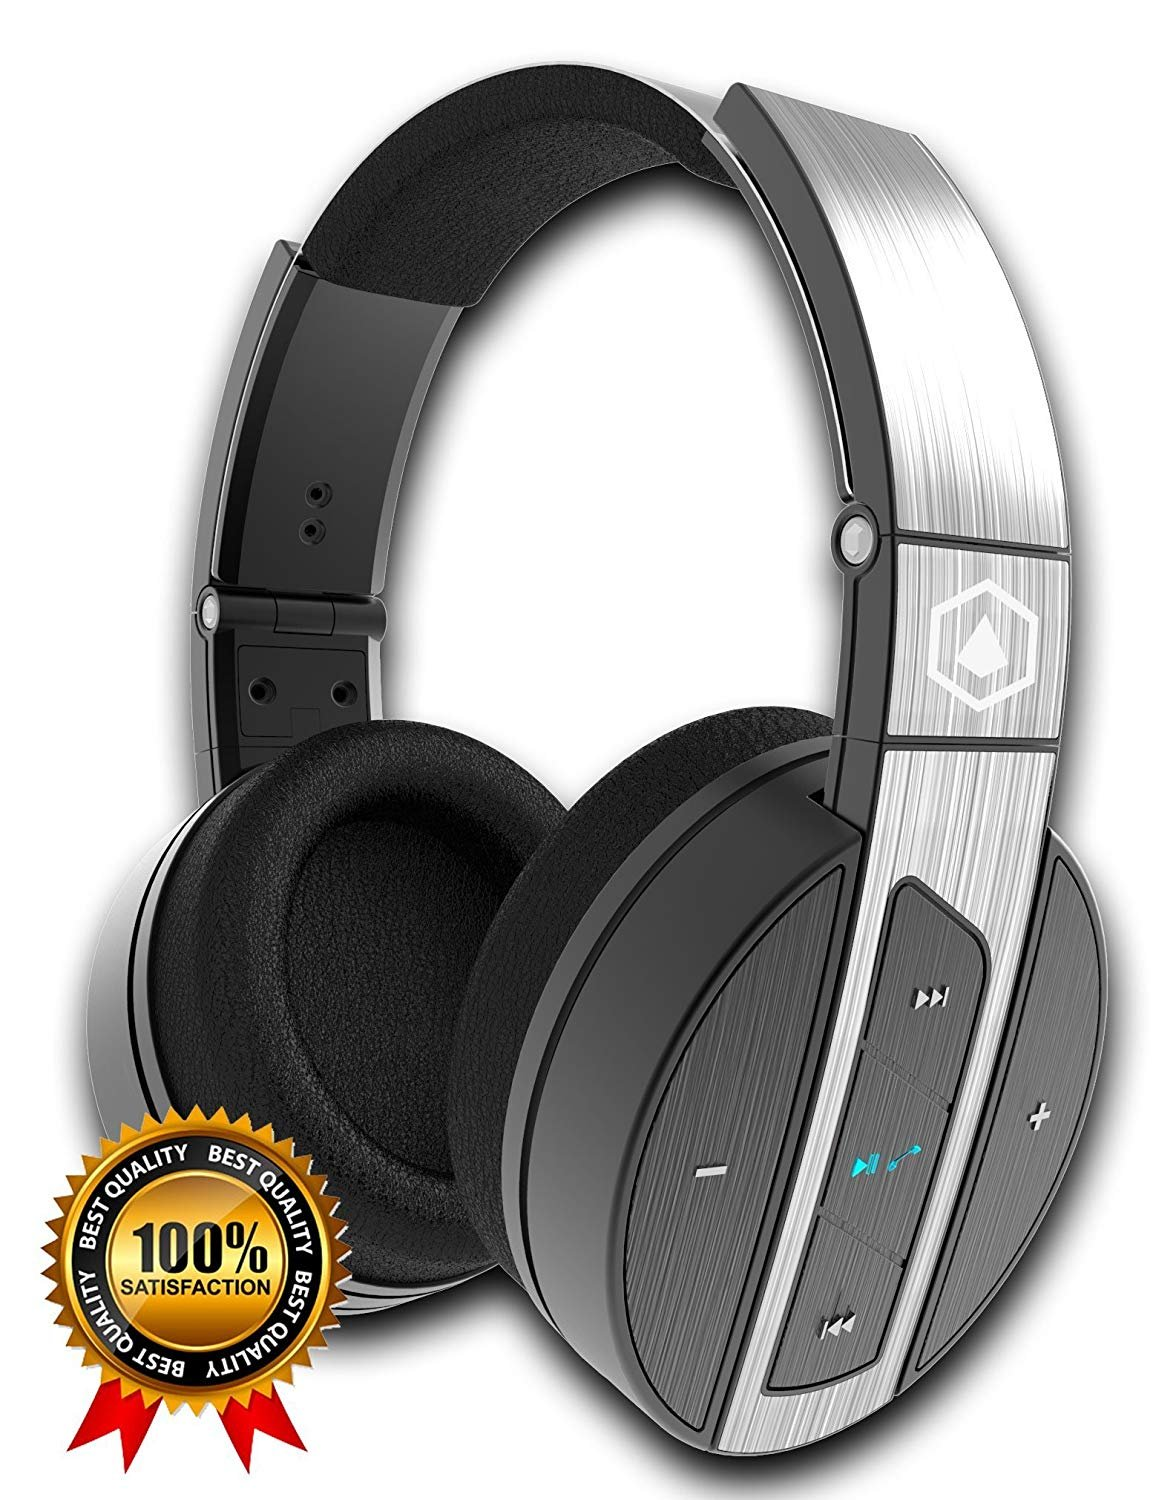 HiFi Elite Super 66 Best Over Ear Wireless Bluetooth Headphones & Microphone : Premium Best Sound Quality for Listening to Music or Phone Calls : Portable, Long Battery Life, Lightweight, Comfortable